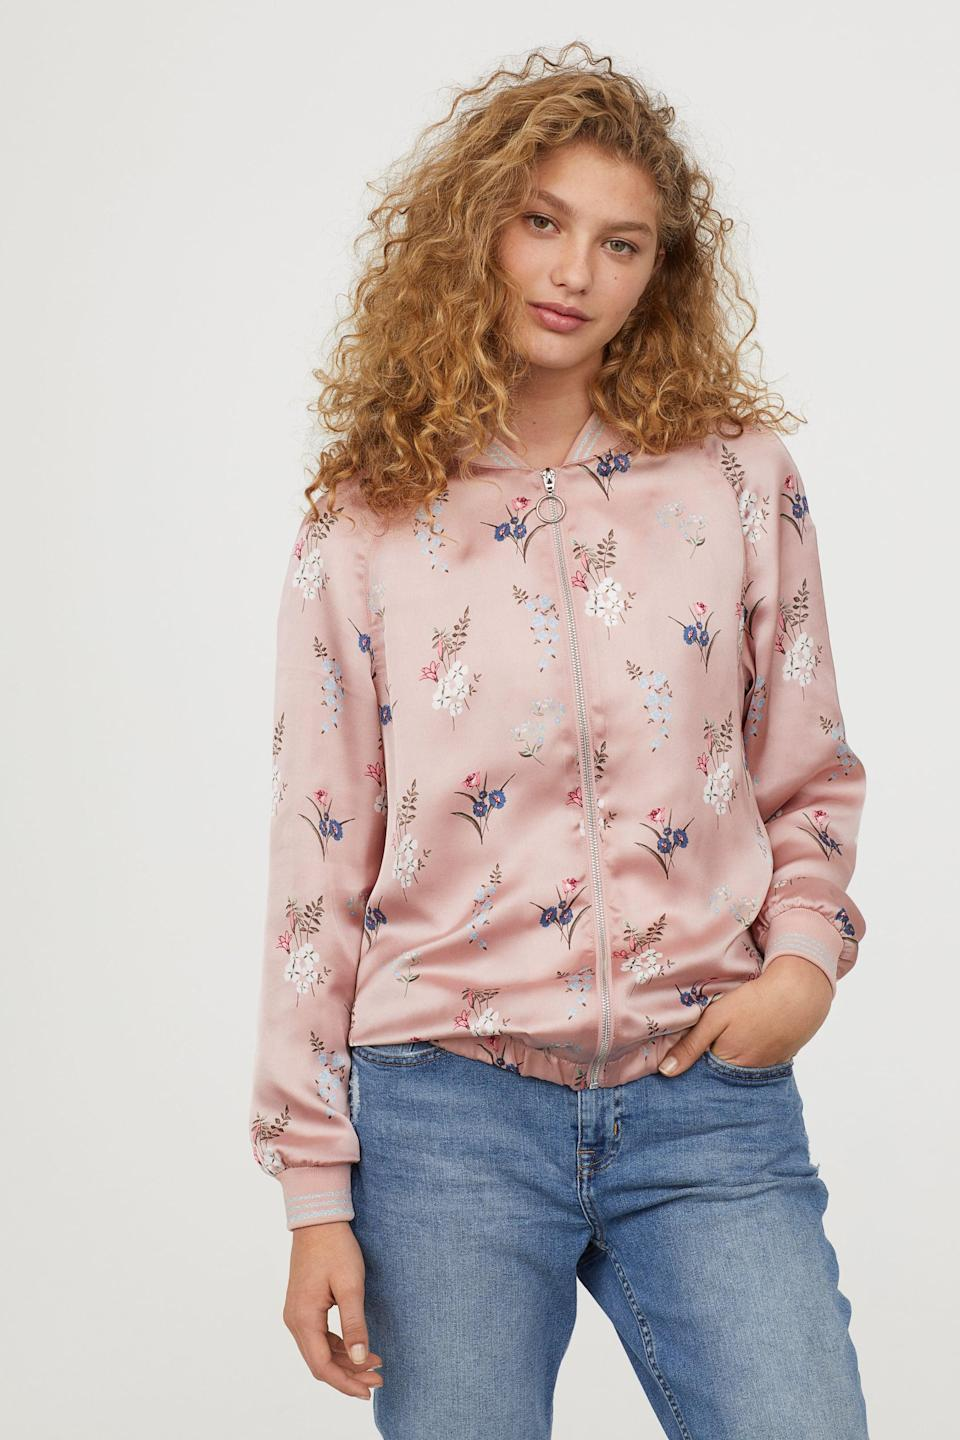 "<p>They'll be the trendiest kid at the bus stop in this <a rel=""nofollow noopener"" href=""https://www.popsugar.com/buy/Satin%20Bomber%20Jacket-366307?p_name=Satin%20Bomber%20Jacket&retailer=www2.hm.com&price=14&evar1=moms%3Aus&evar9=45374878&evar98=https%3A%2F%2Fwww.popsugar.com%2Fmoms%2Fphoto-gallery%2F45374878%2Fimage%2F45375031%2FSatin-Bomber-Jacket&list1=holiday%2Cgift%20guide%2Cparenting%20gift%20guide%2Cgifts%20for%20kids%2Ckid%20shopping%2Ctweens%20and%20teens%2Cgifts%20for%20teens&prop13=mobile&pdata=1"" target=""_blank"" data-ylk=""slk:Satin Bomber Jacket"" class=""link rapid-noclick-resp"">Satin Bomber Jacket</a> ($14, originally $40).</p>"